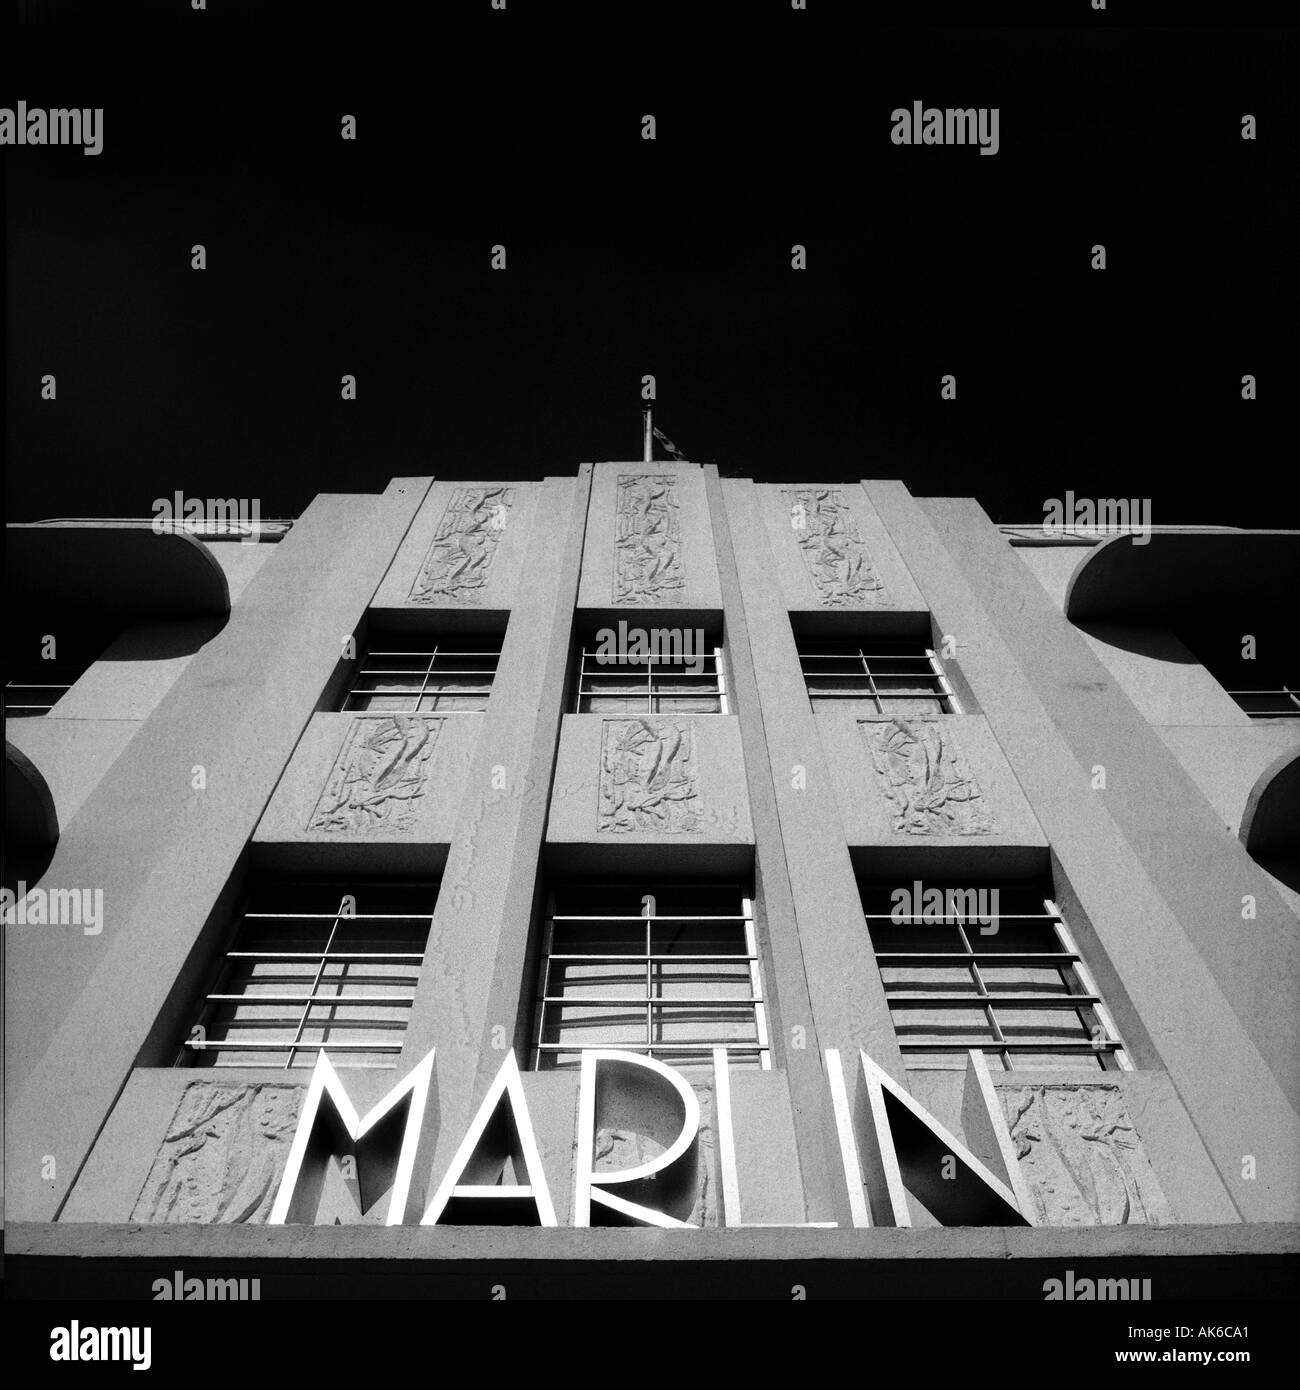 Fassade des Hotels Marlin in s Miami South Beach Art Deco District Stockbild